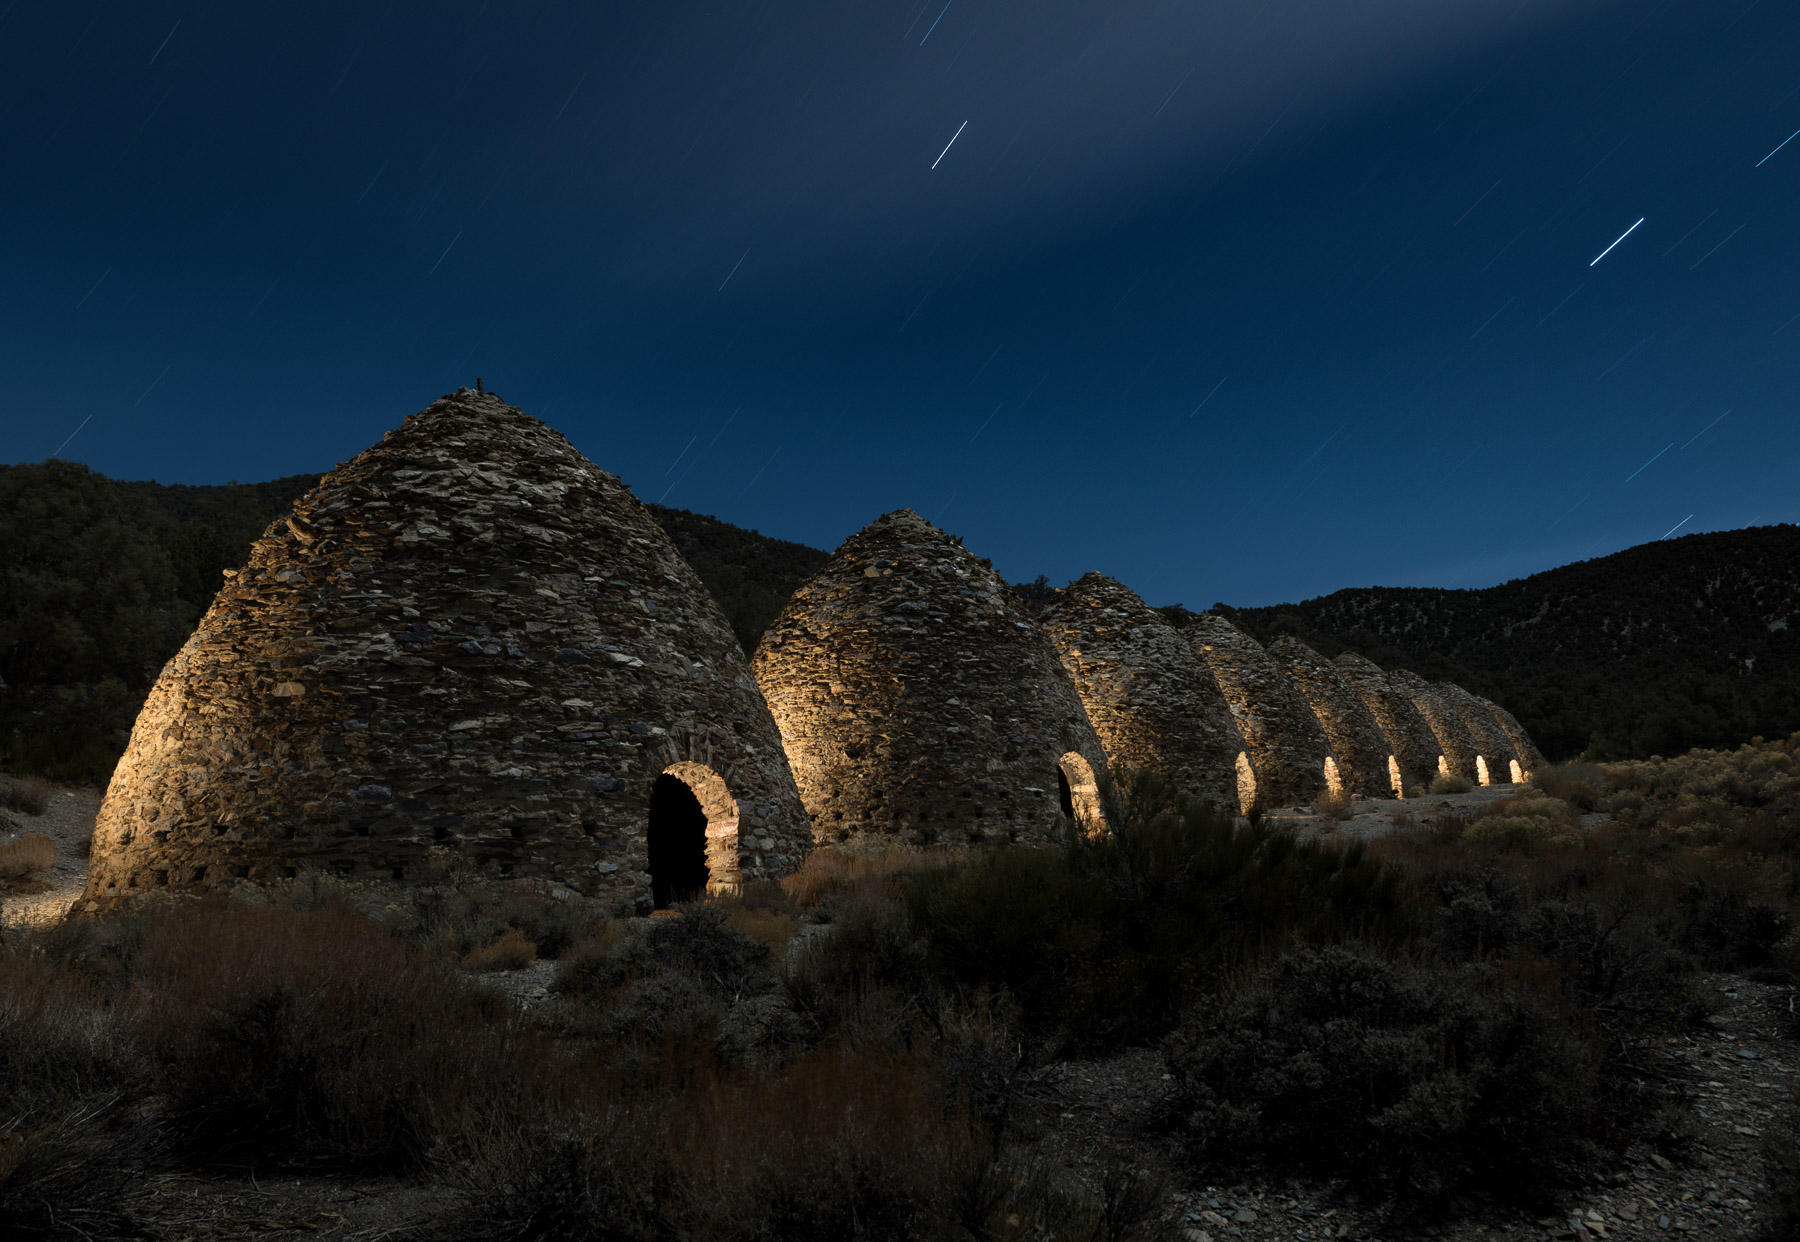 """ How We Got The Shot: Wildrose Charcoal Kilns Of Death Valley National Park """